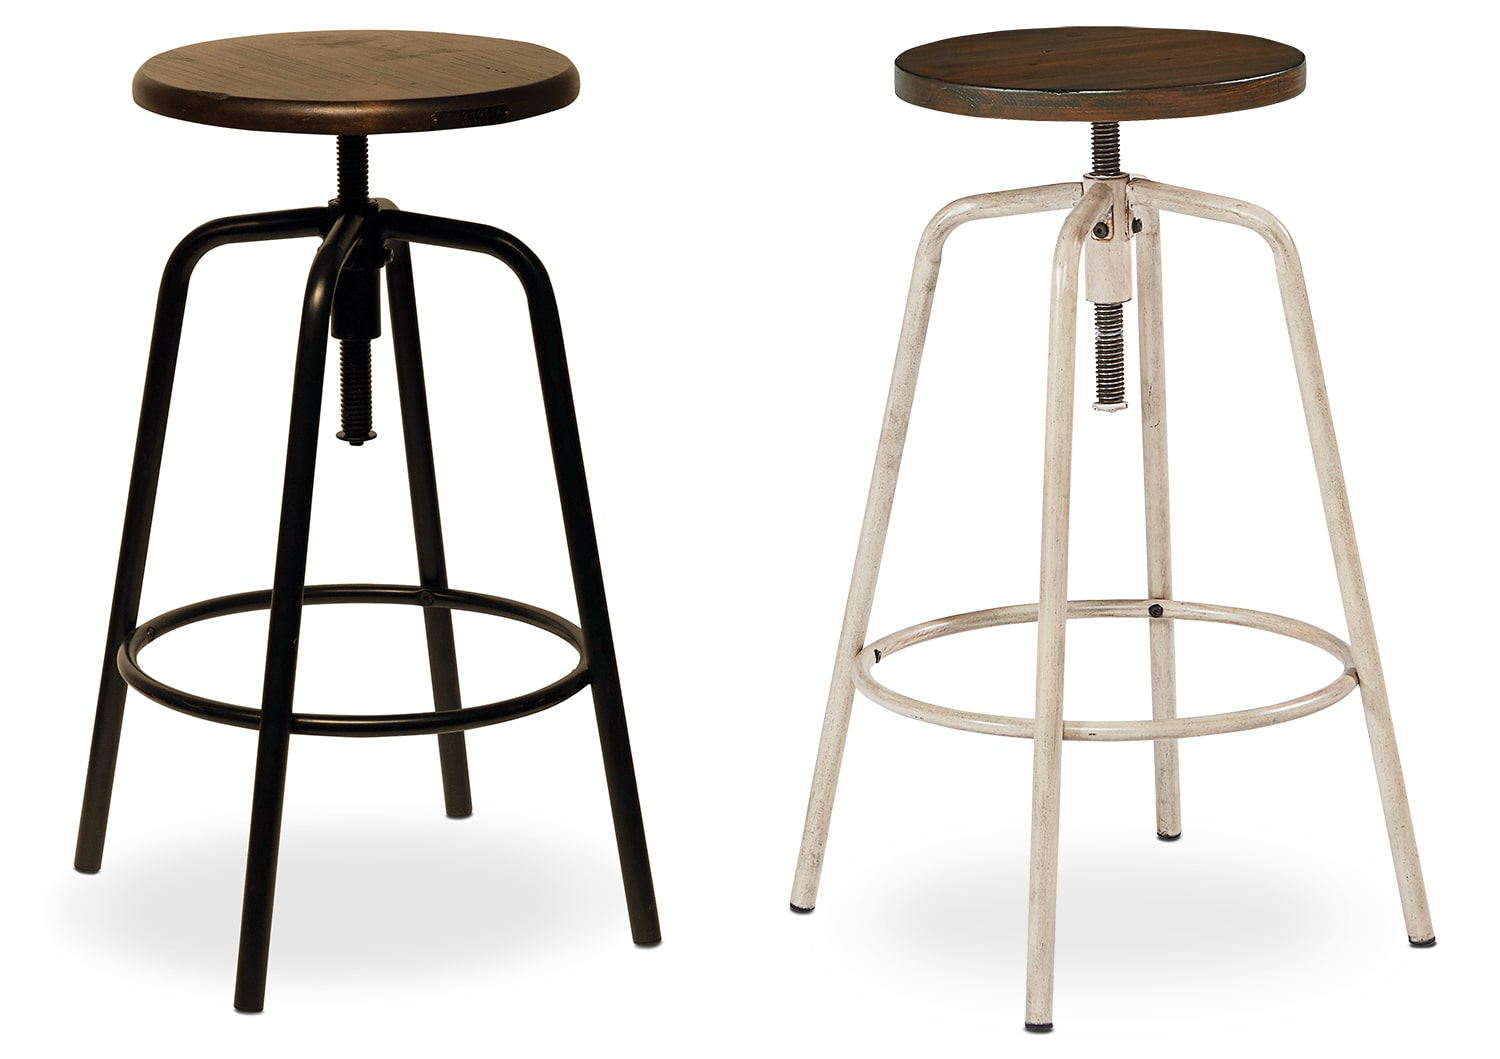 The Factory Stool Collection